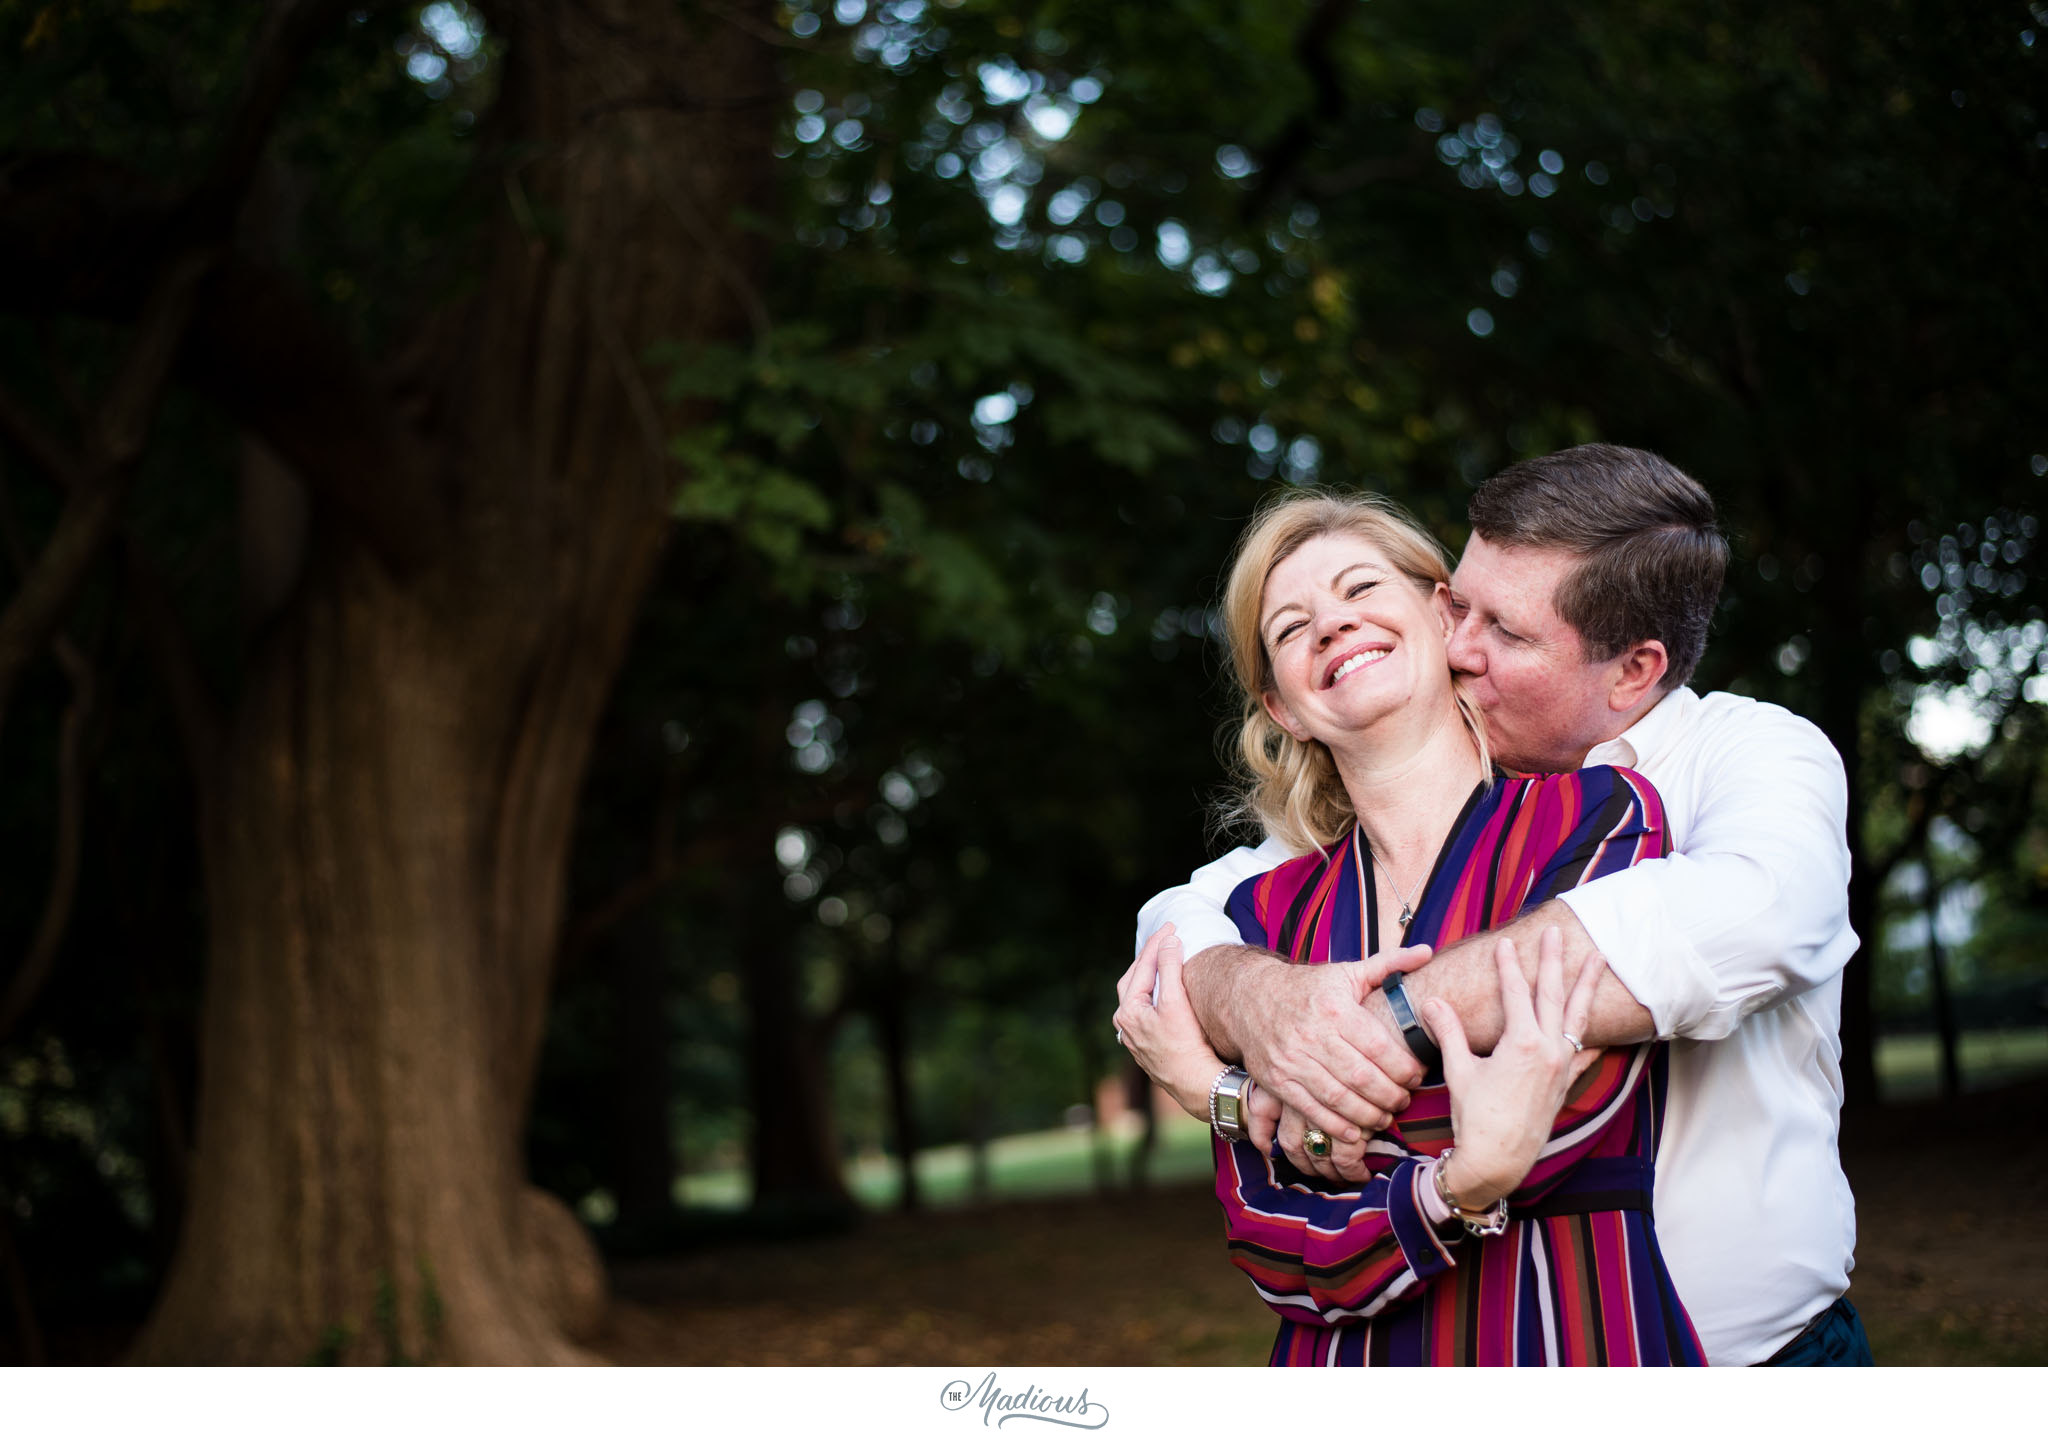 Dumbarton Oaks Park engagement, DC engagement session, 0006.JPG